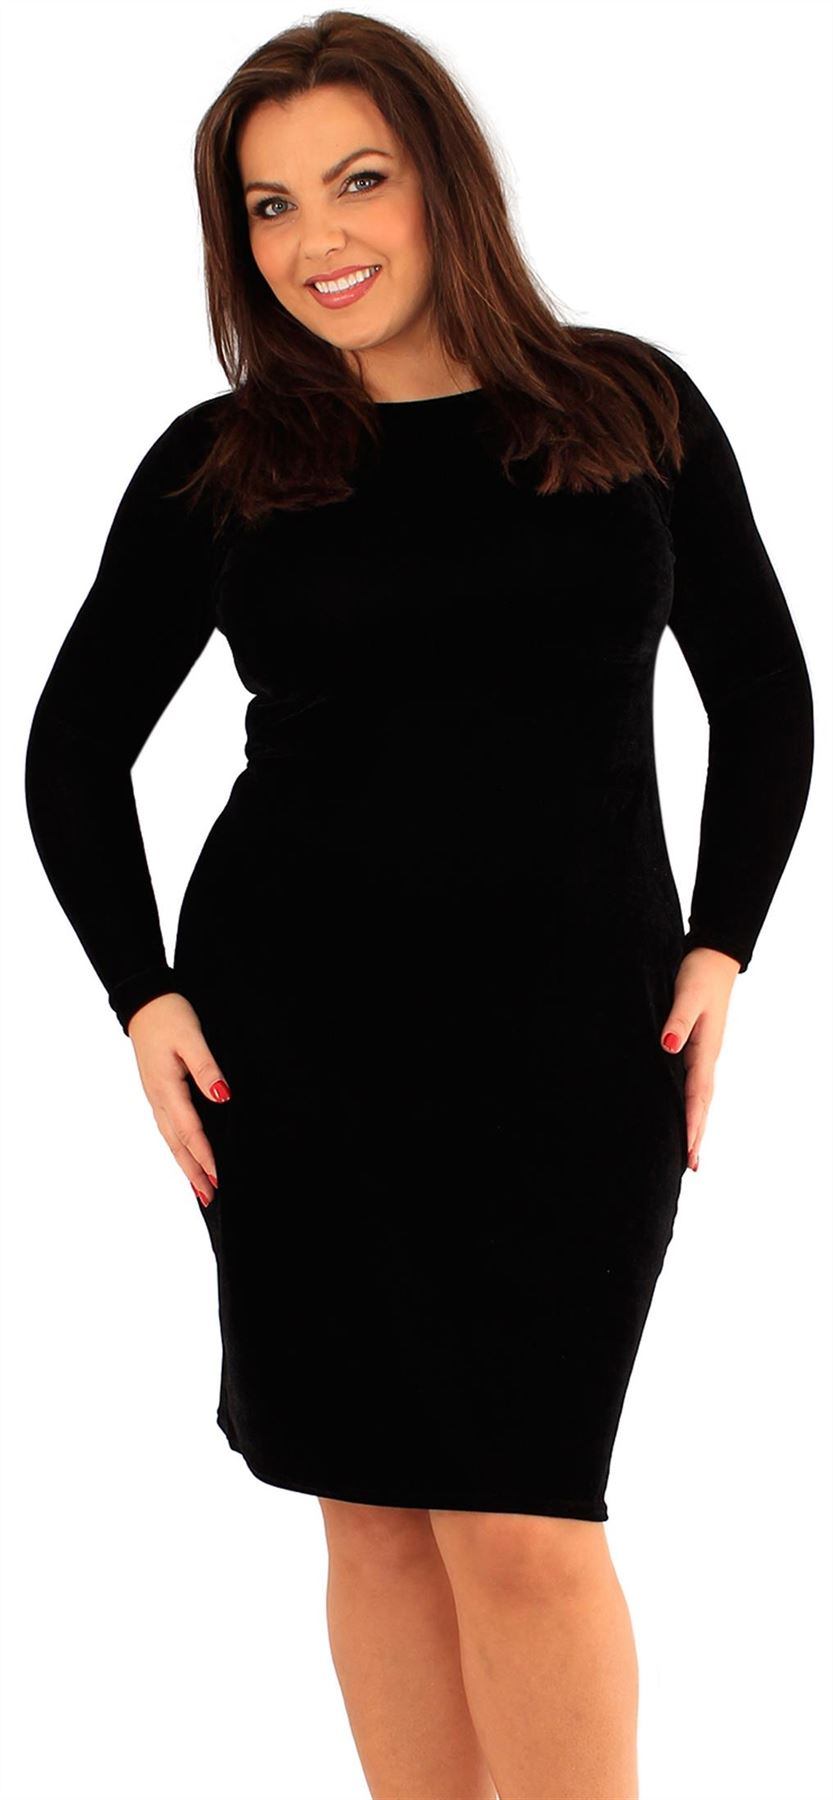 New Womens Plus Size Velvet Long Sleeve Bodycon Midi Dress 18 24 Ebay